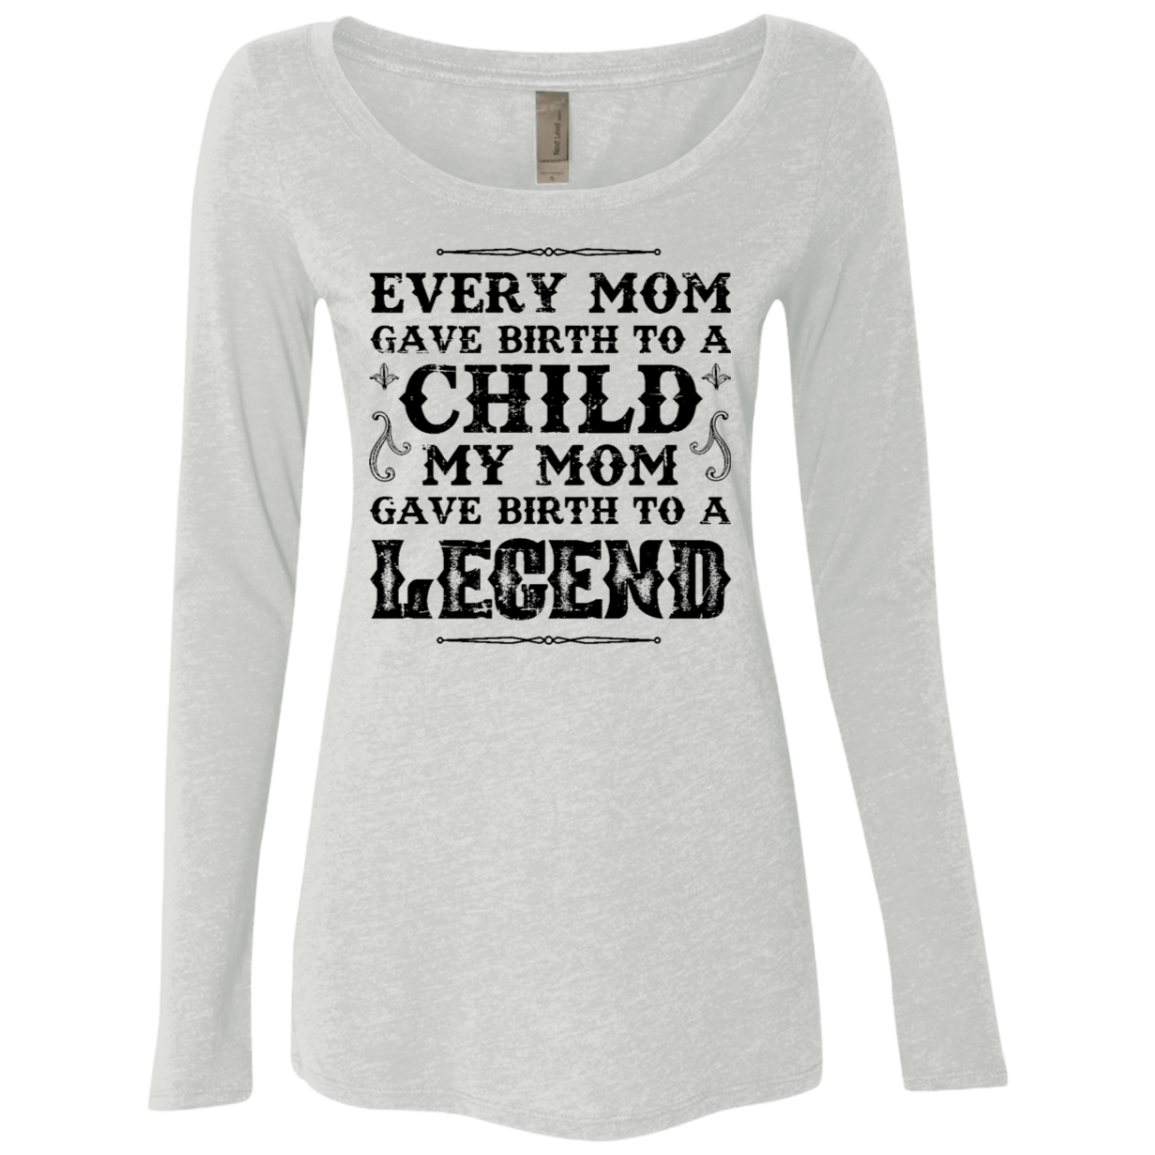 Every Mom Gave Birth To A Child My Mom Gave Birth To A Legend Women's Long Sleeve Tee